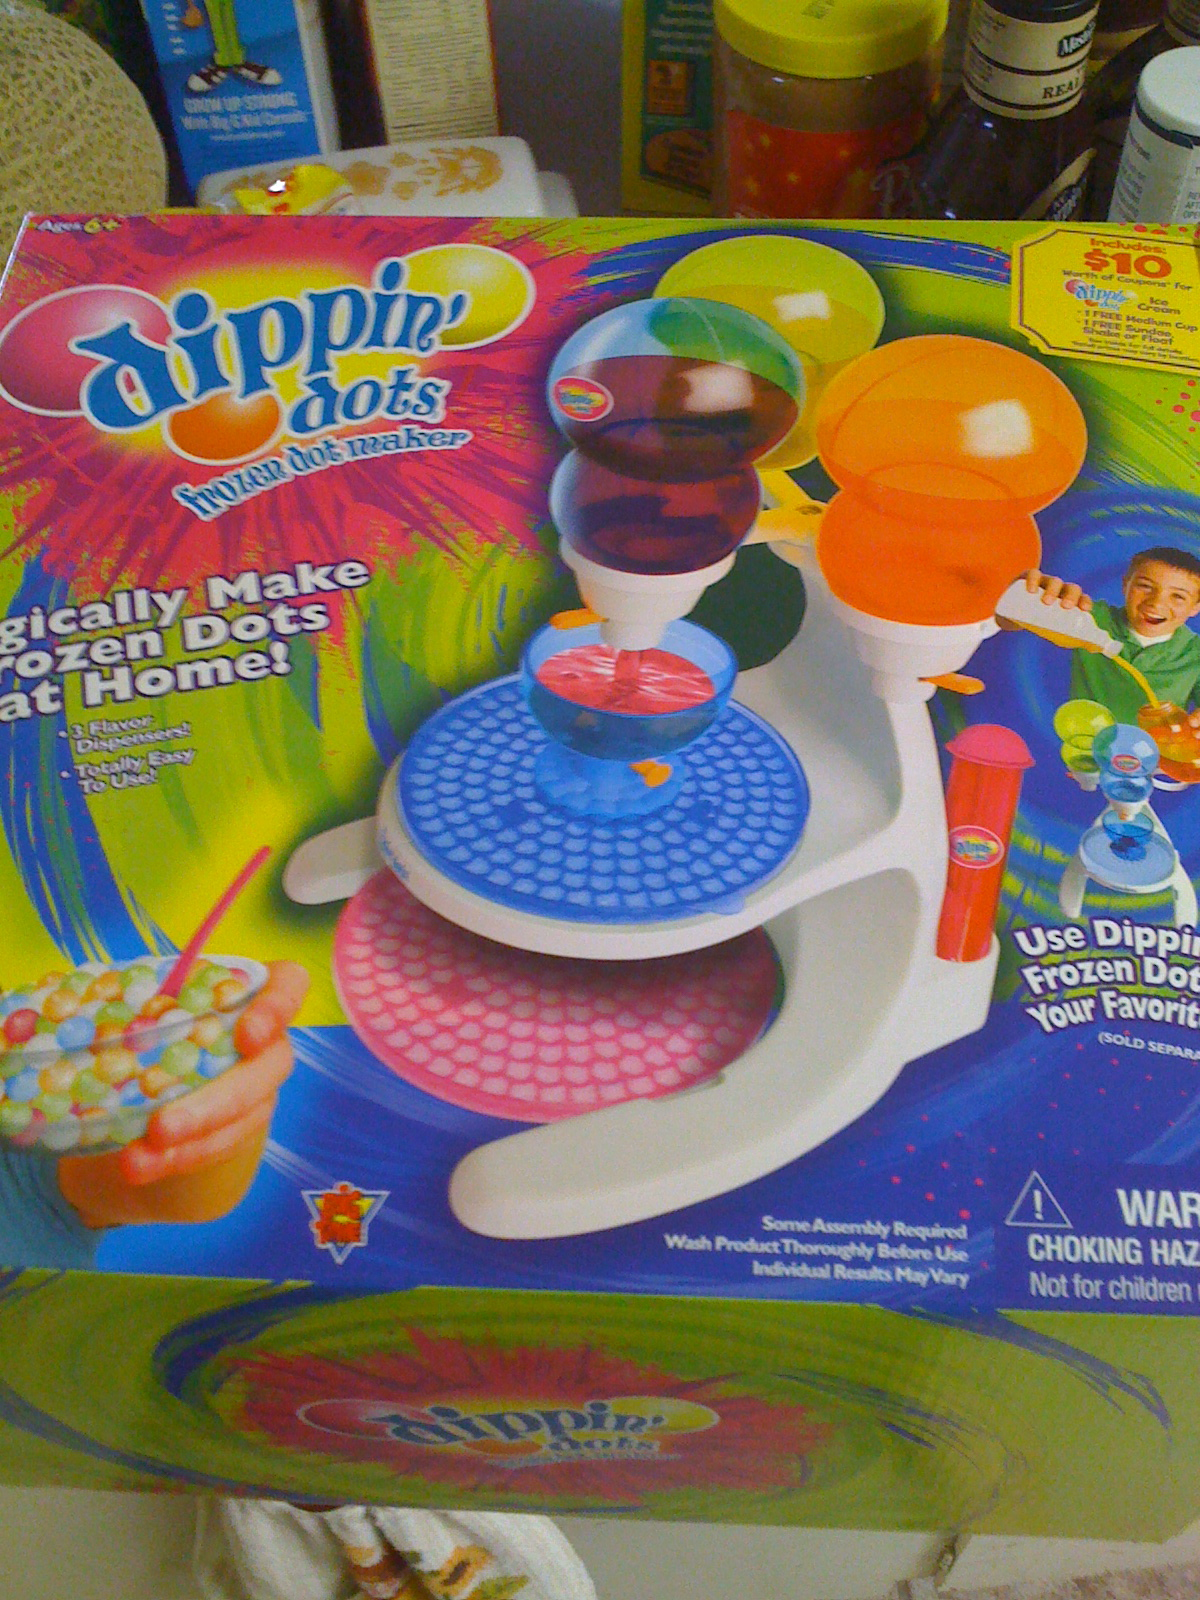 dippin dots machine maker